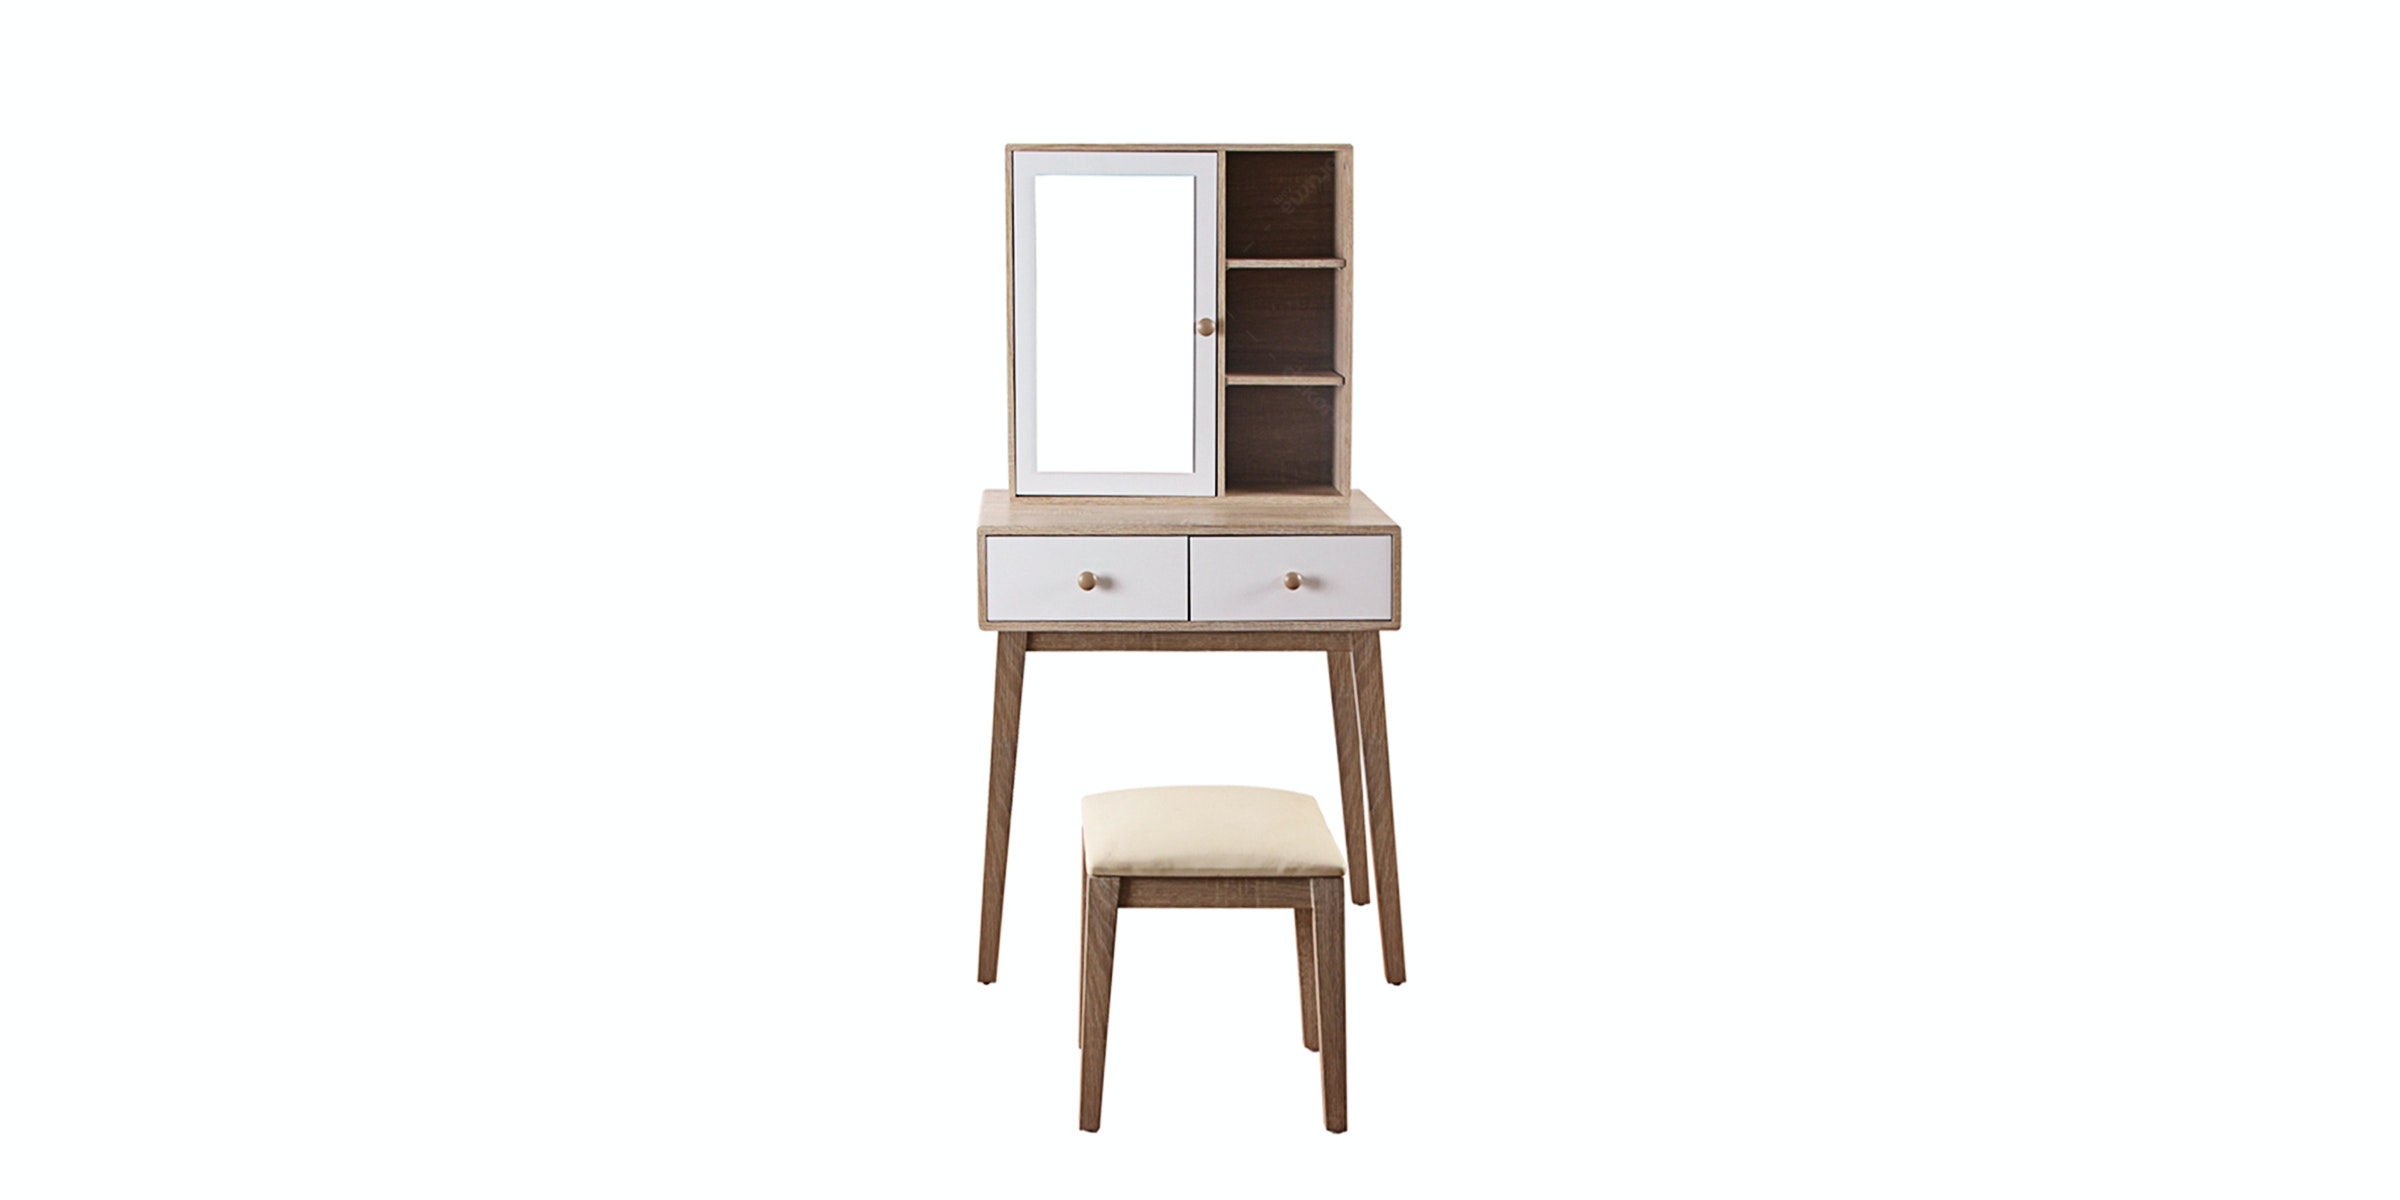 Olympic Curla Series Dressing Table - Meja Rias Scandinavian Style